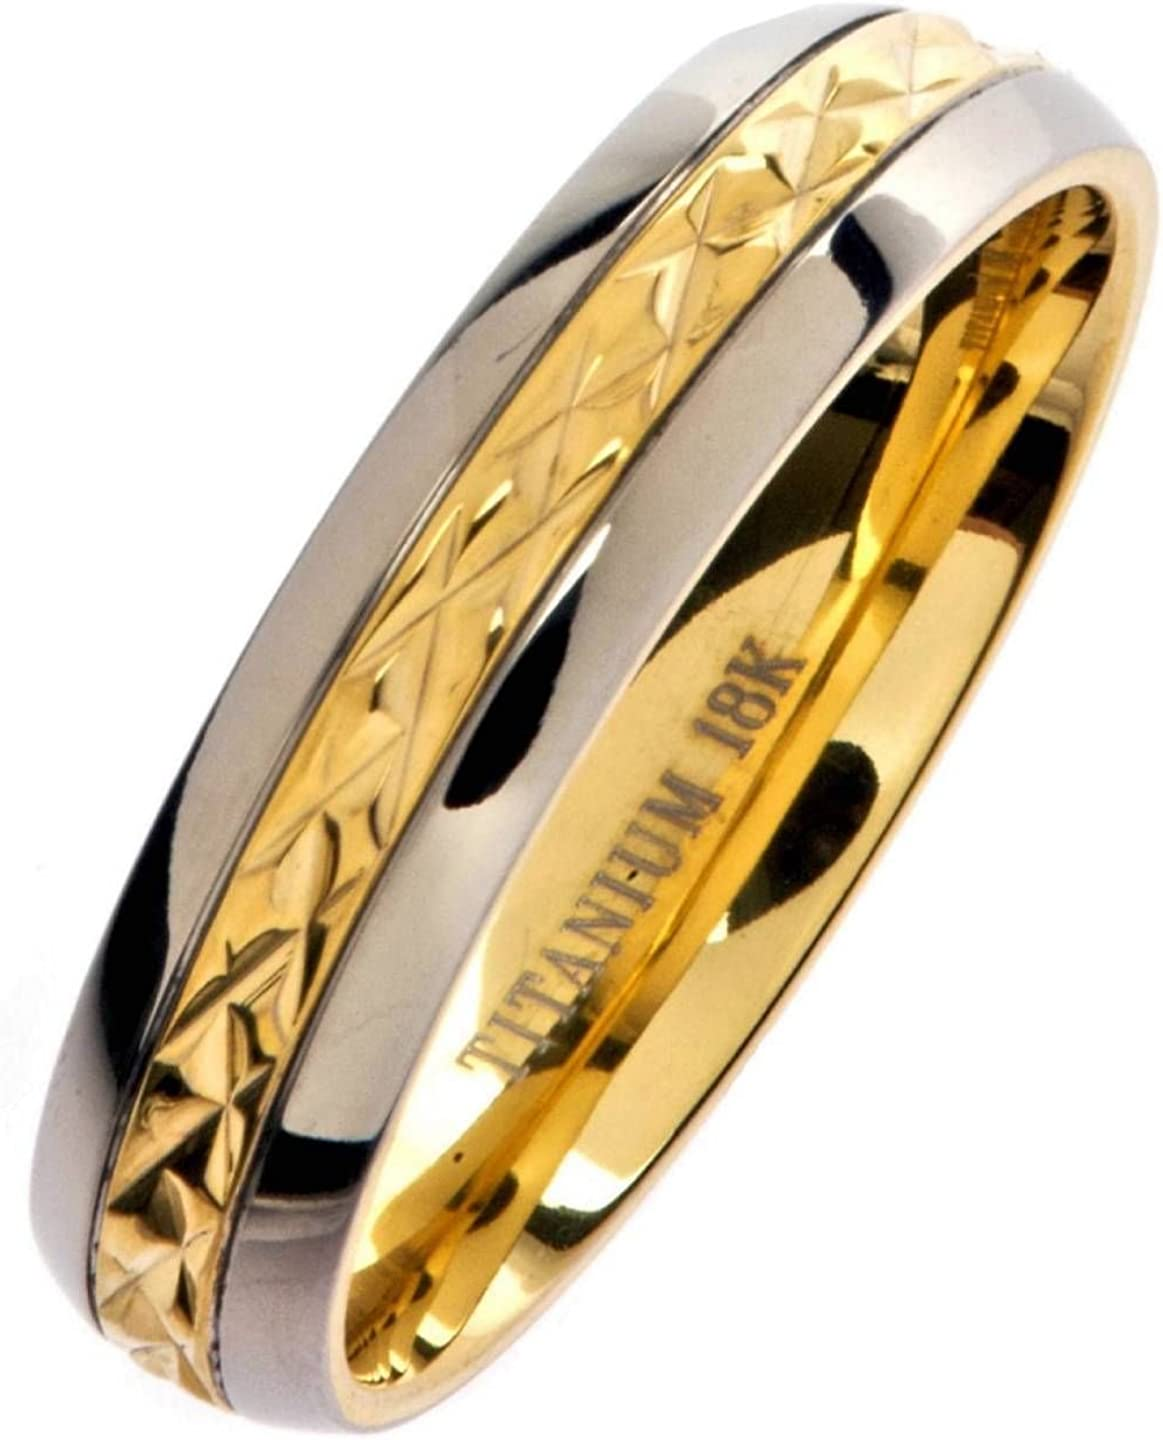 Titanium Yellow IP-plated Grooved 7mm Polished Band Size 13.5 Length Width 7